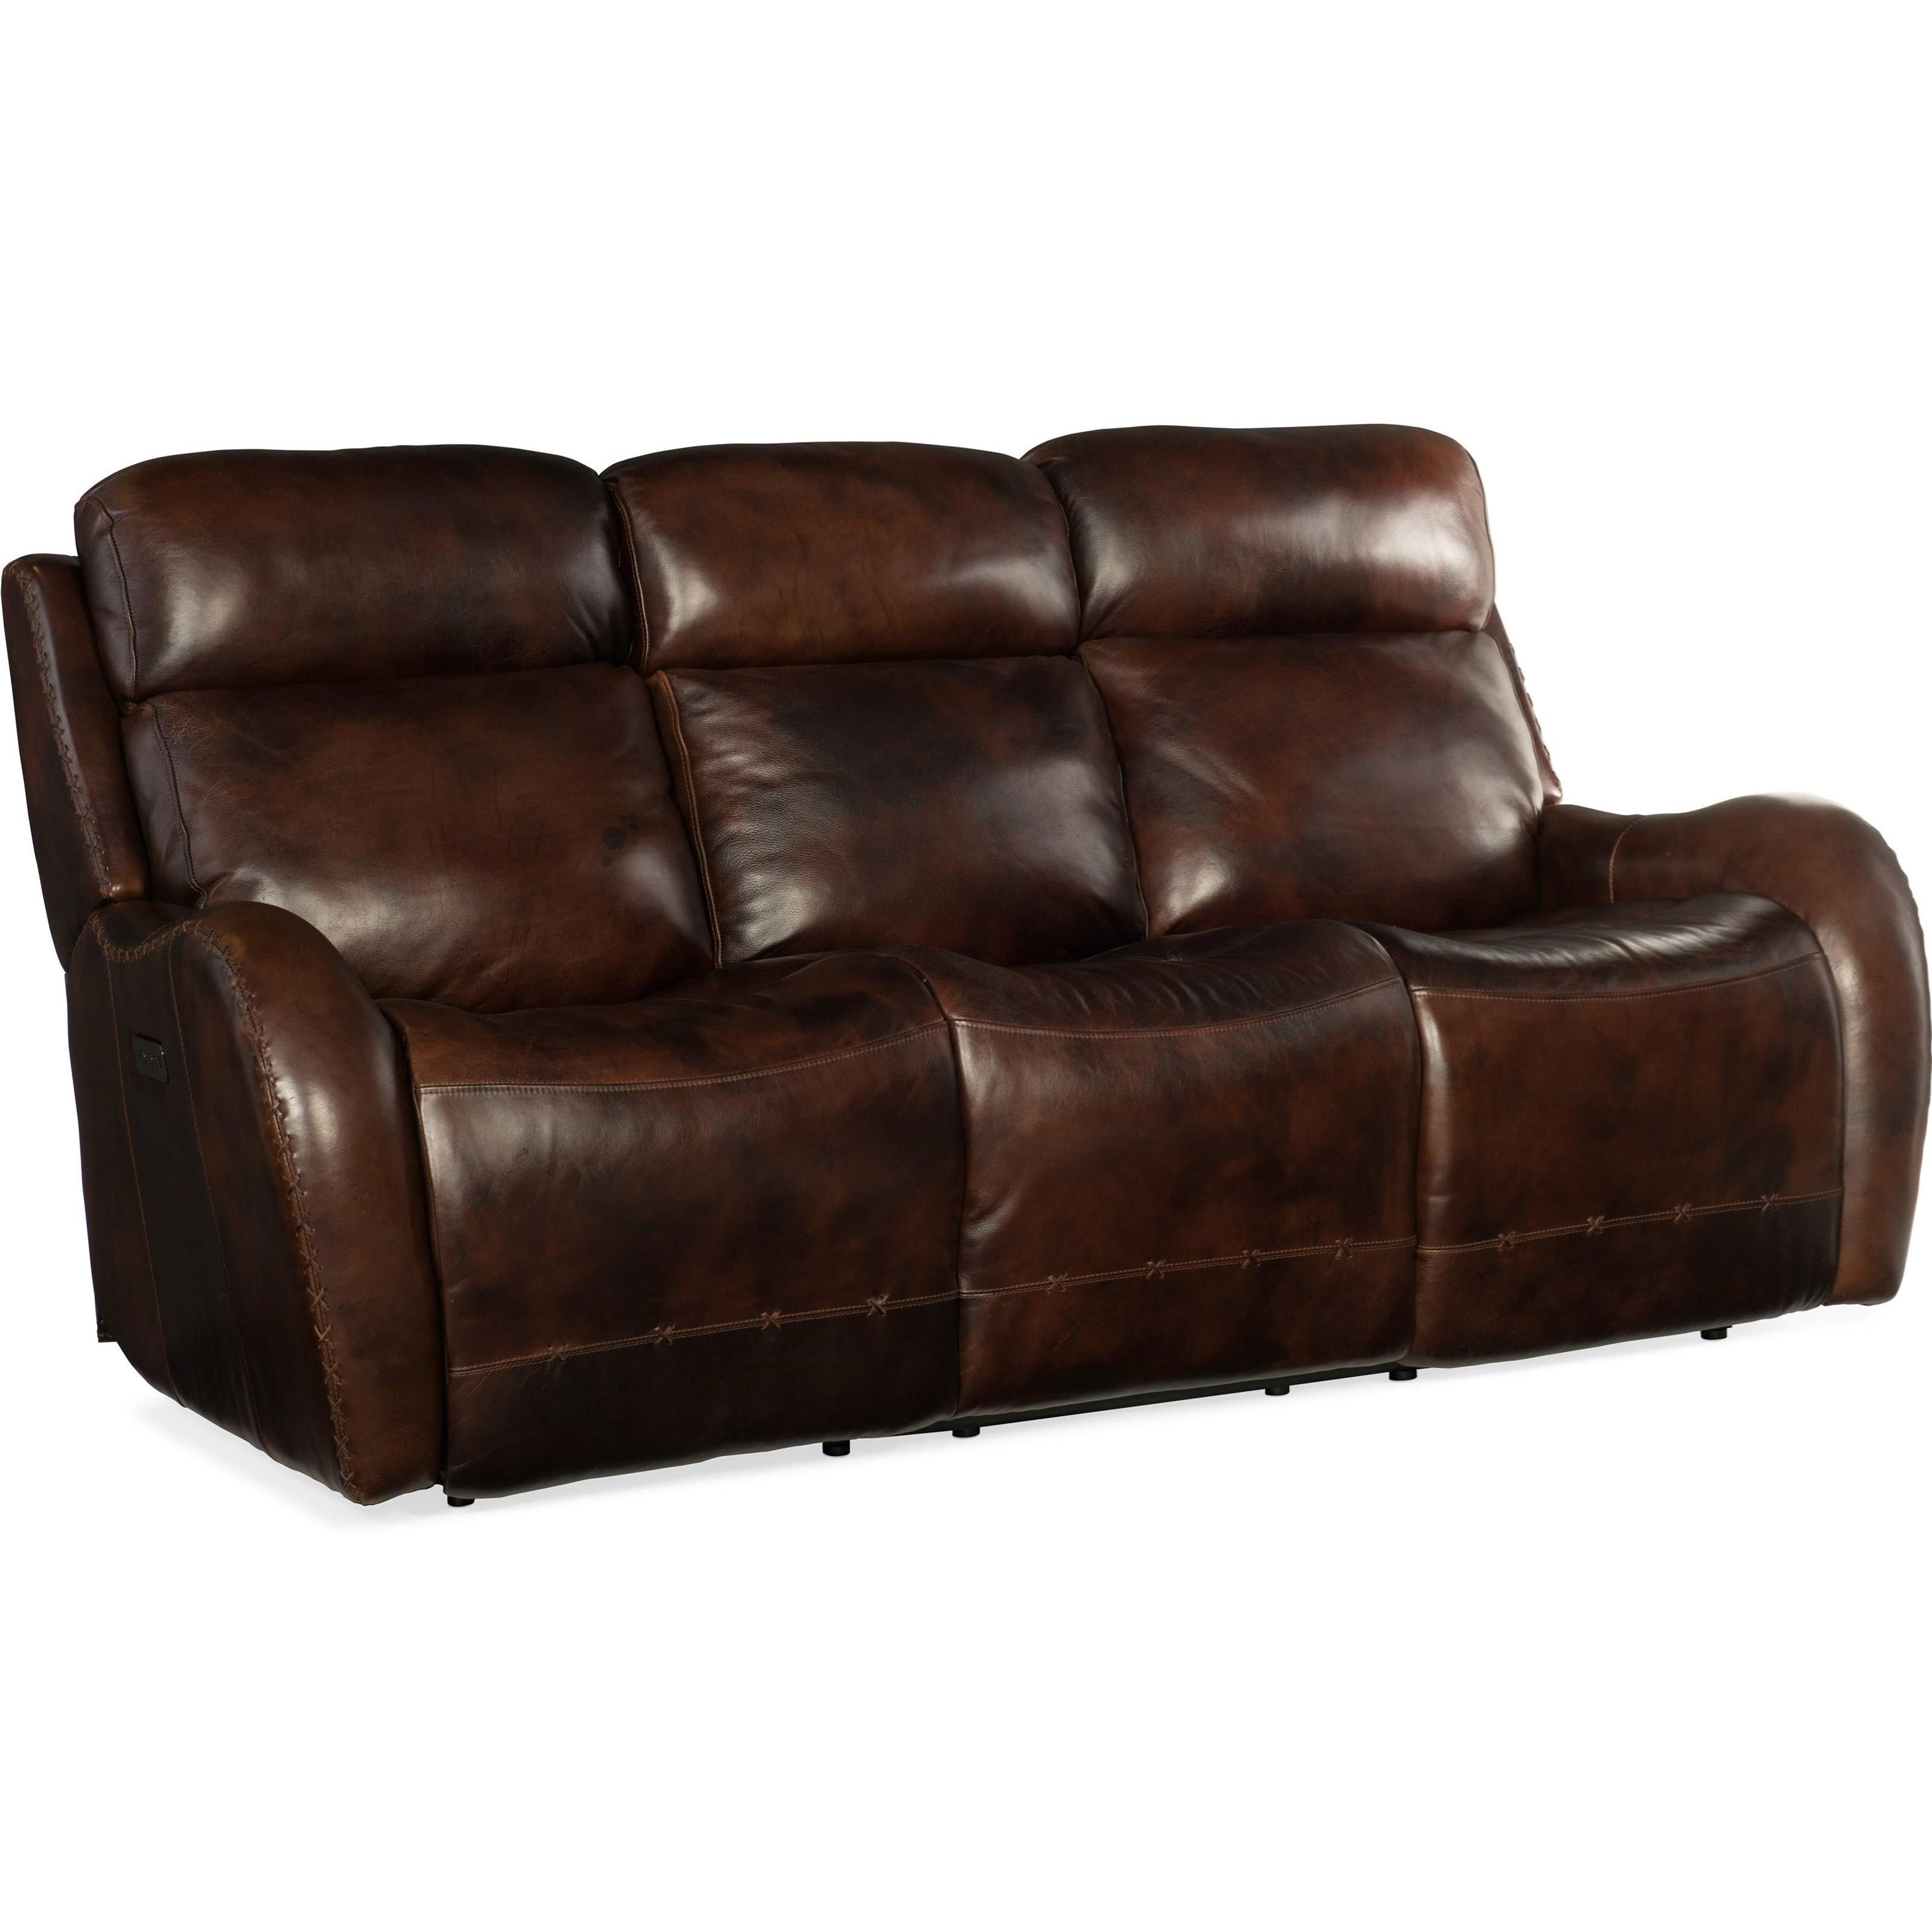 Chambers Power Recliner Sofa by Hooker Furniture at Miller Waldrop Furniture and Decor